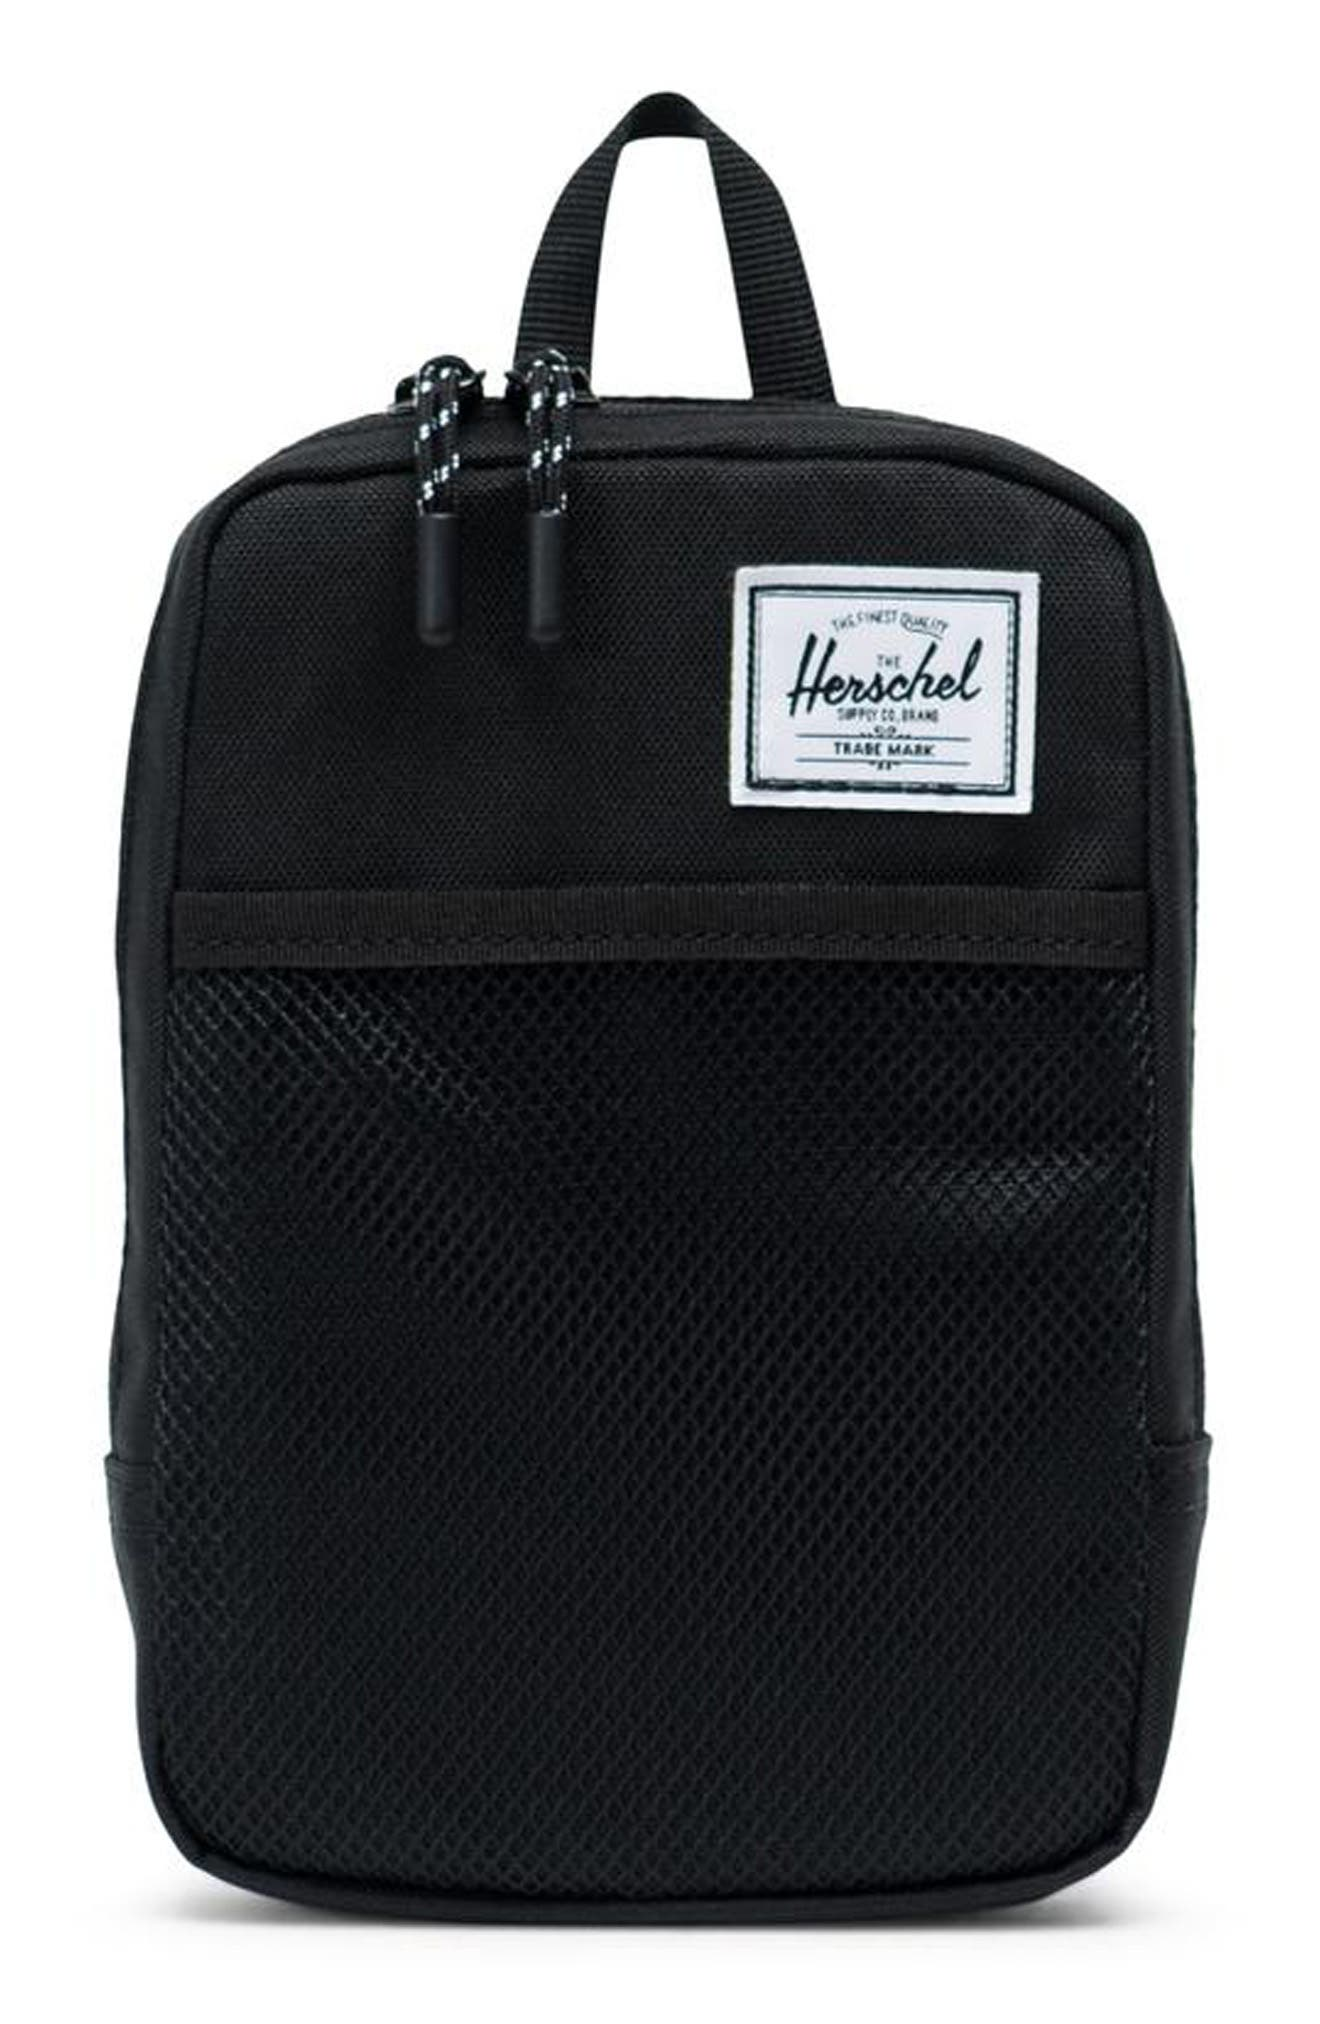 HERSCHEL SUPPLY CO. Large Sinclair Crossbody Bag, Main, color, BLACK